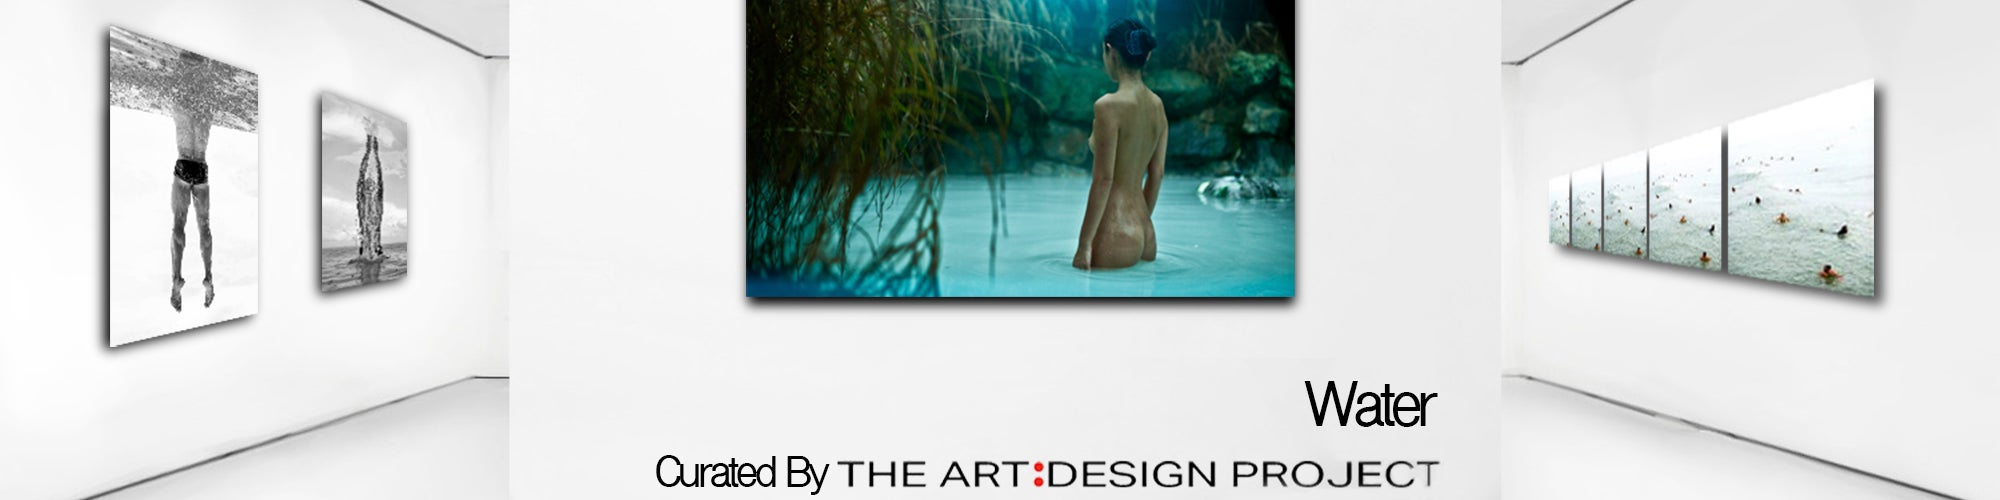 The Art Design Project